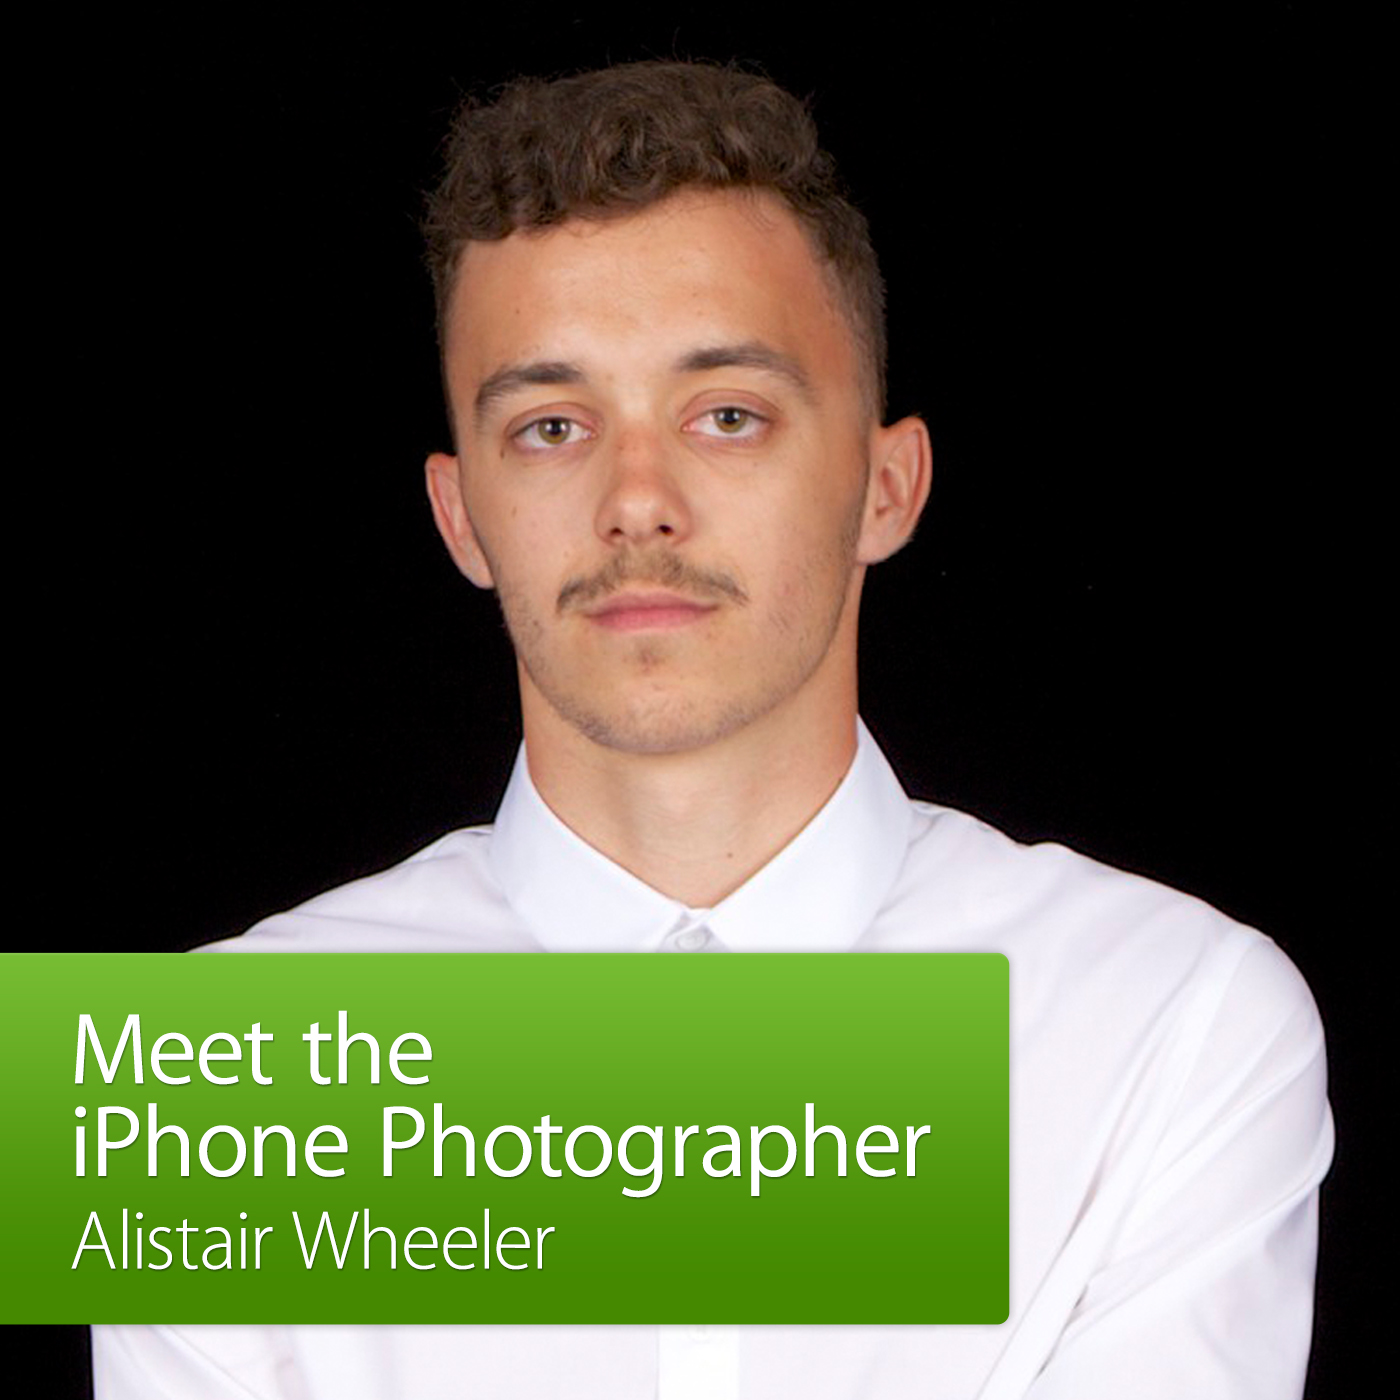 Alistair Wheeler: Meet the iPhone Photographer